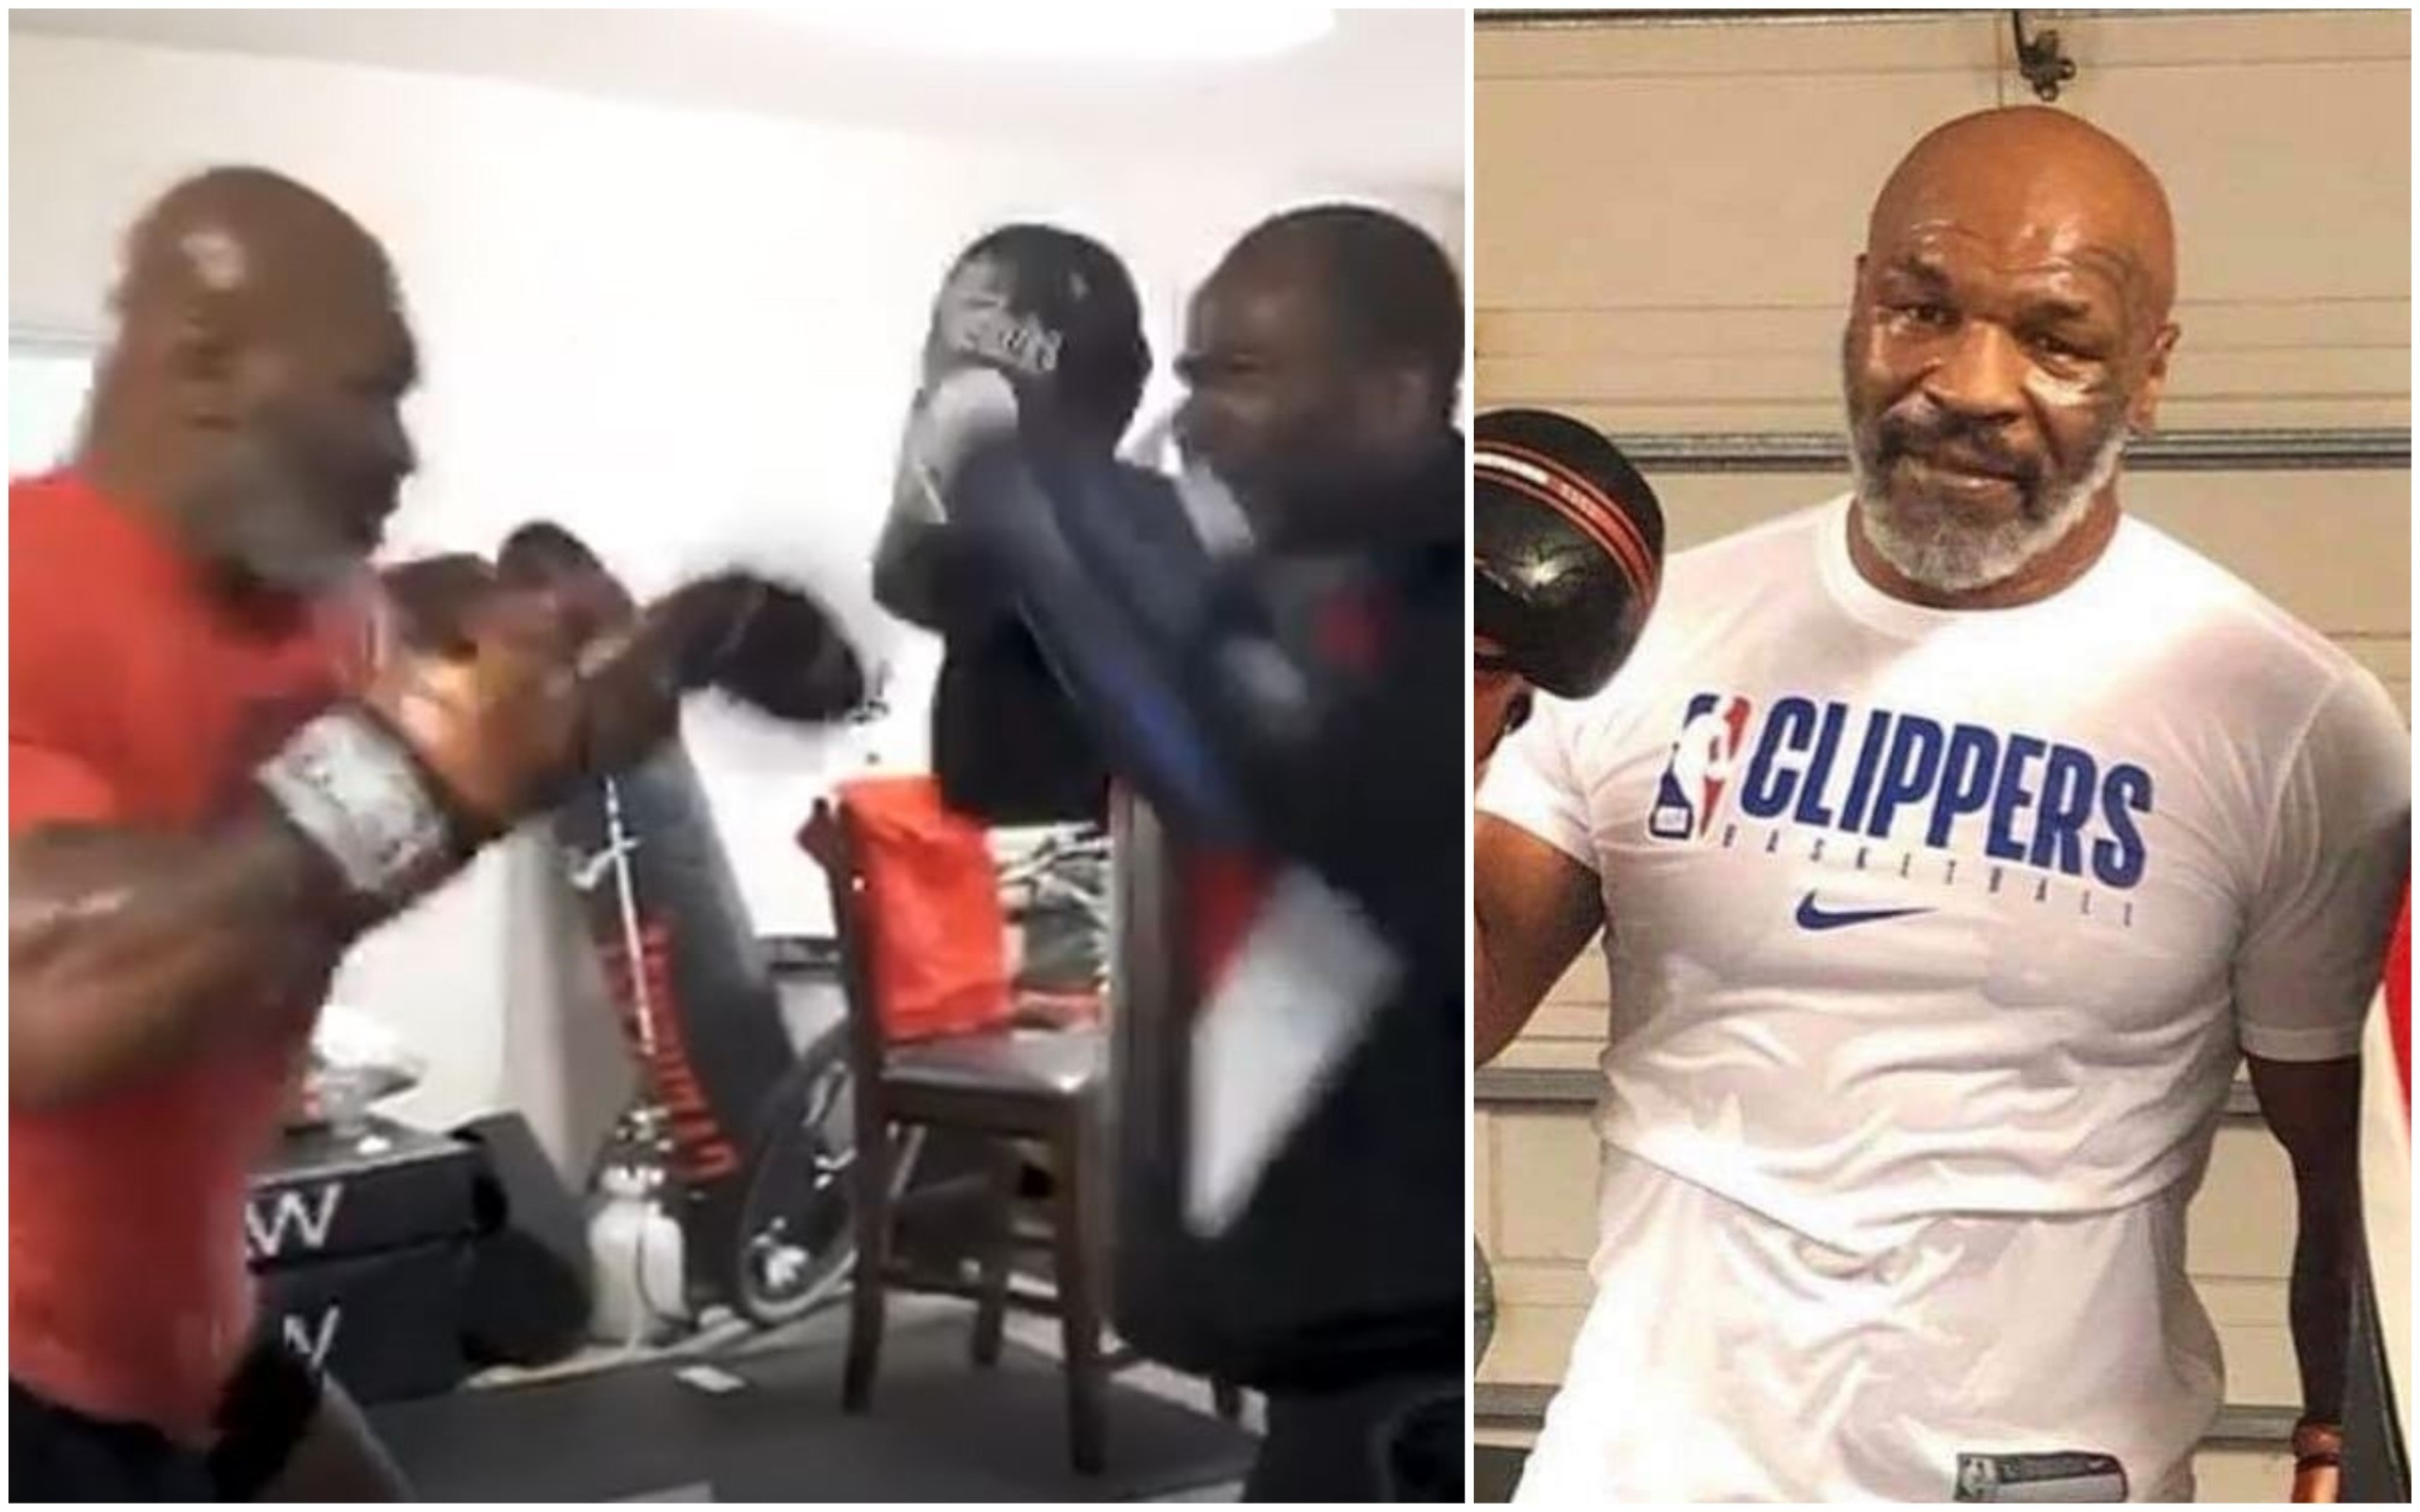 New bone chilling video emerges of  a scary Mike Tyson destroying mitts! - Mike Tyson